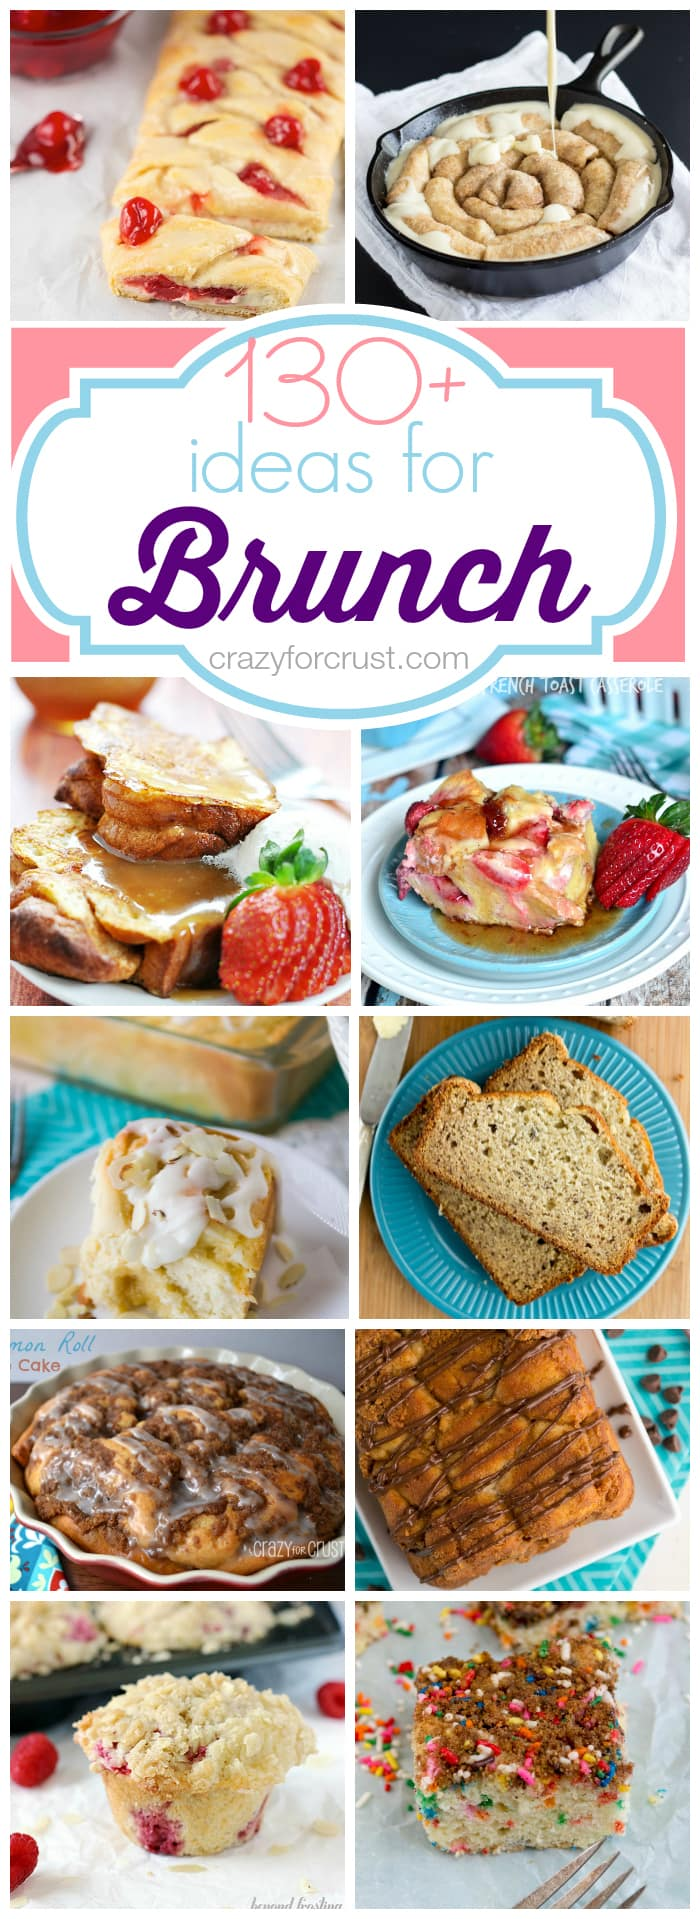 Over 130 Ideas for Brunch Recipes at crazyforcrust.com